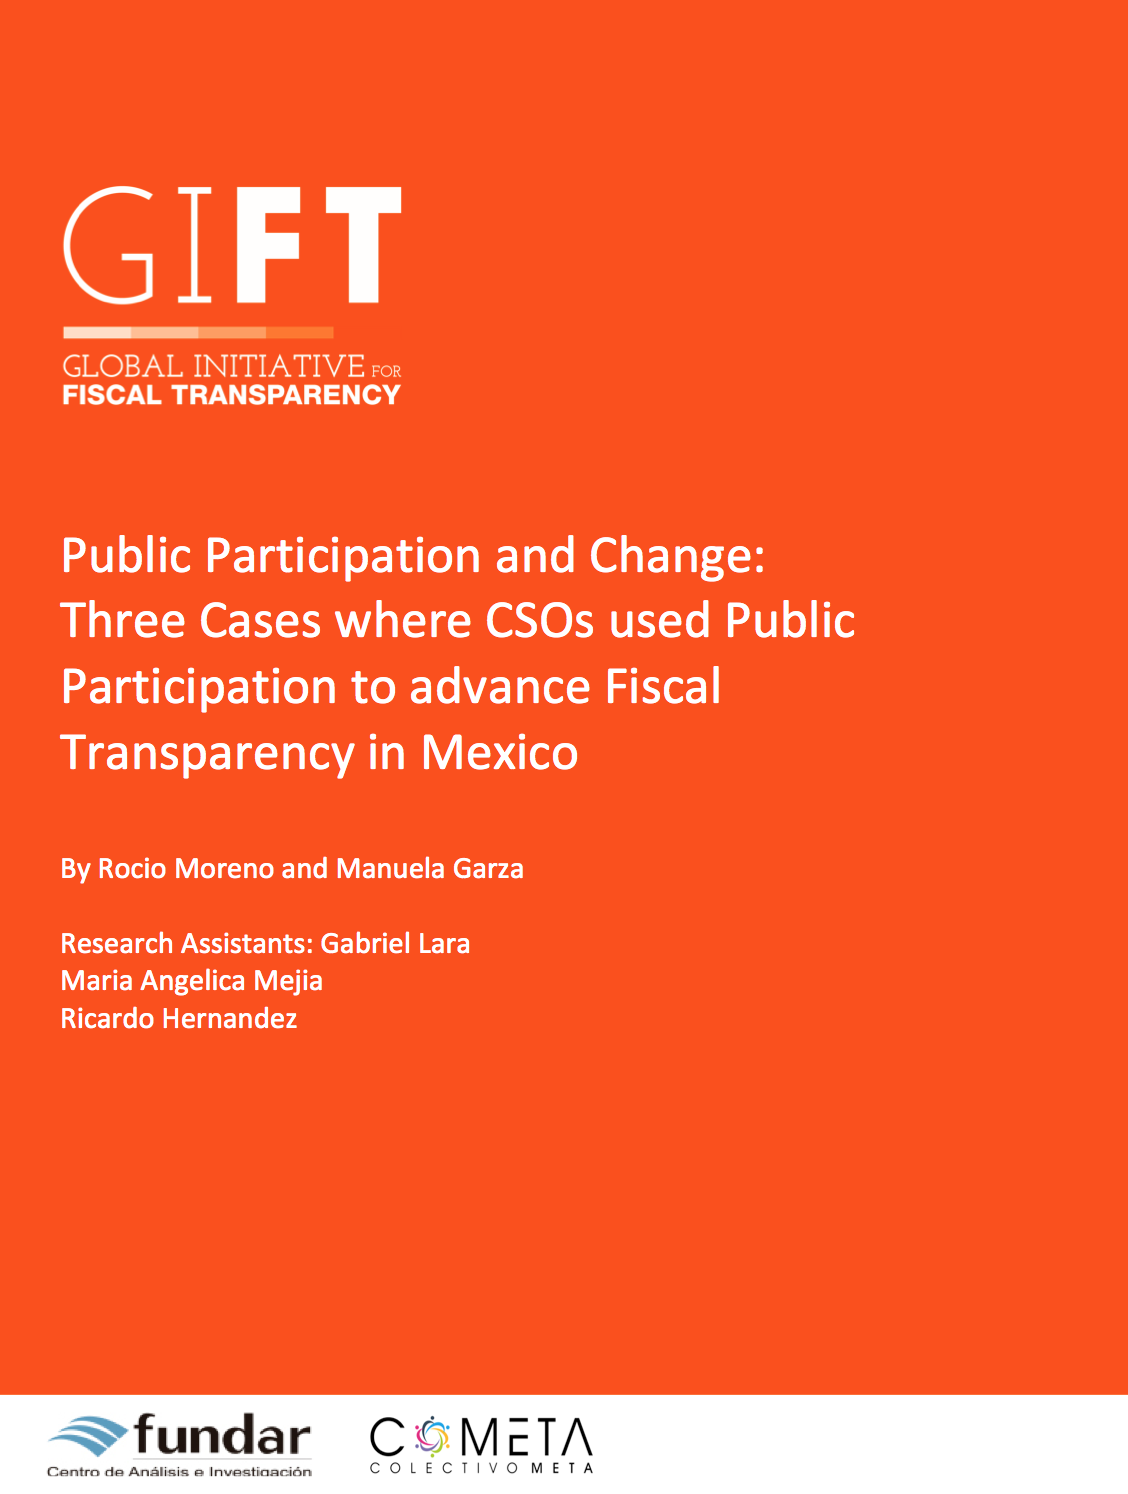 Public Participation and Change: Three Cases where CSOs used Public Participation to advance Fiscal Transparency in Mexico